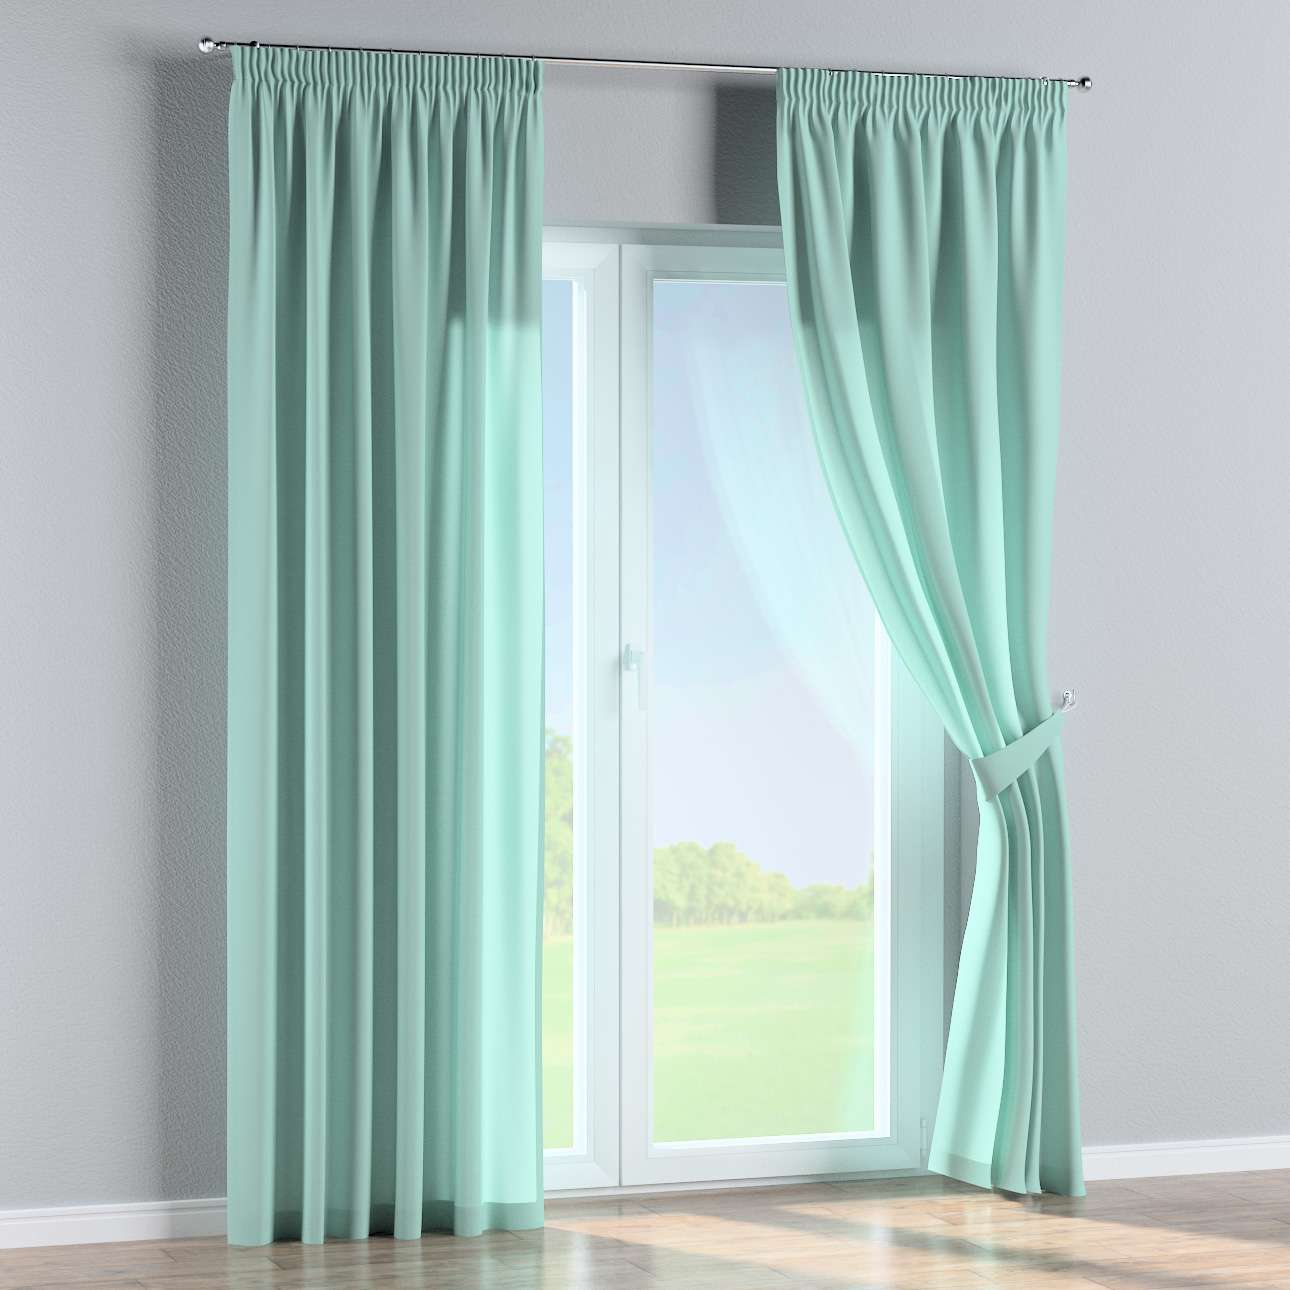 Pencil pleat curtains 130 x 260 cm (51 x 102 inch) in collection Loneta , fabric: 133-32